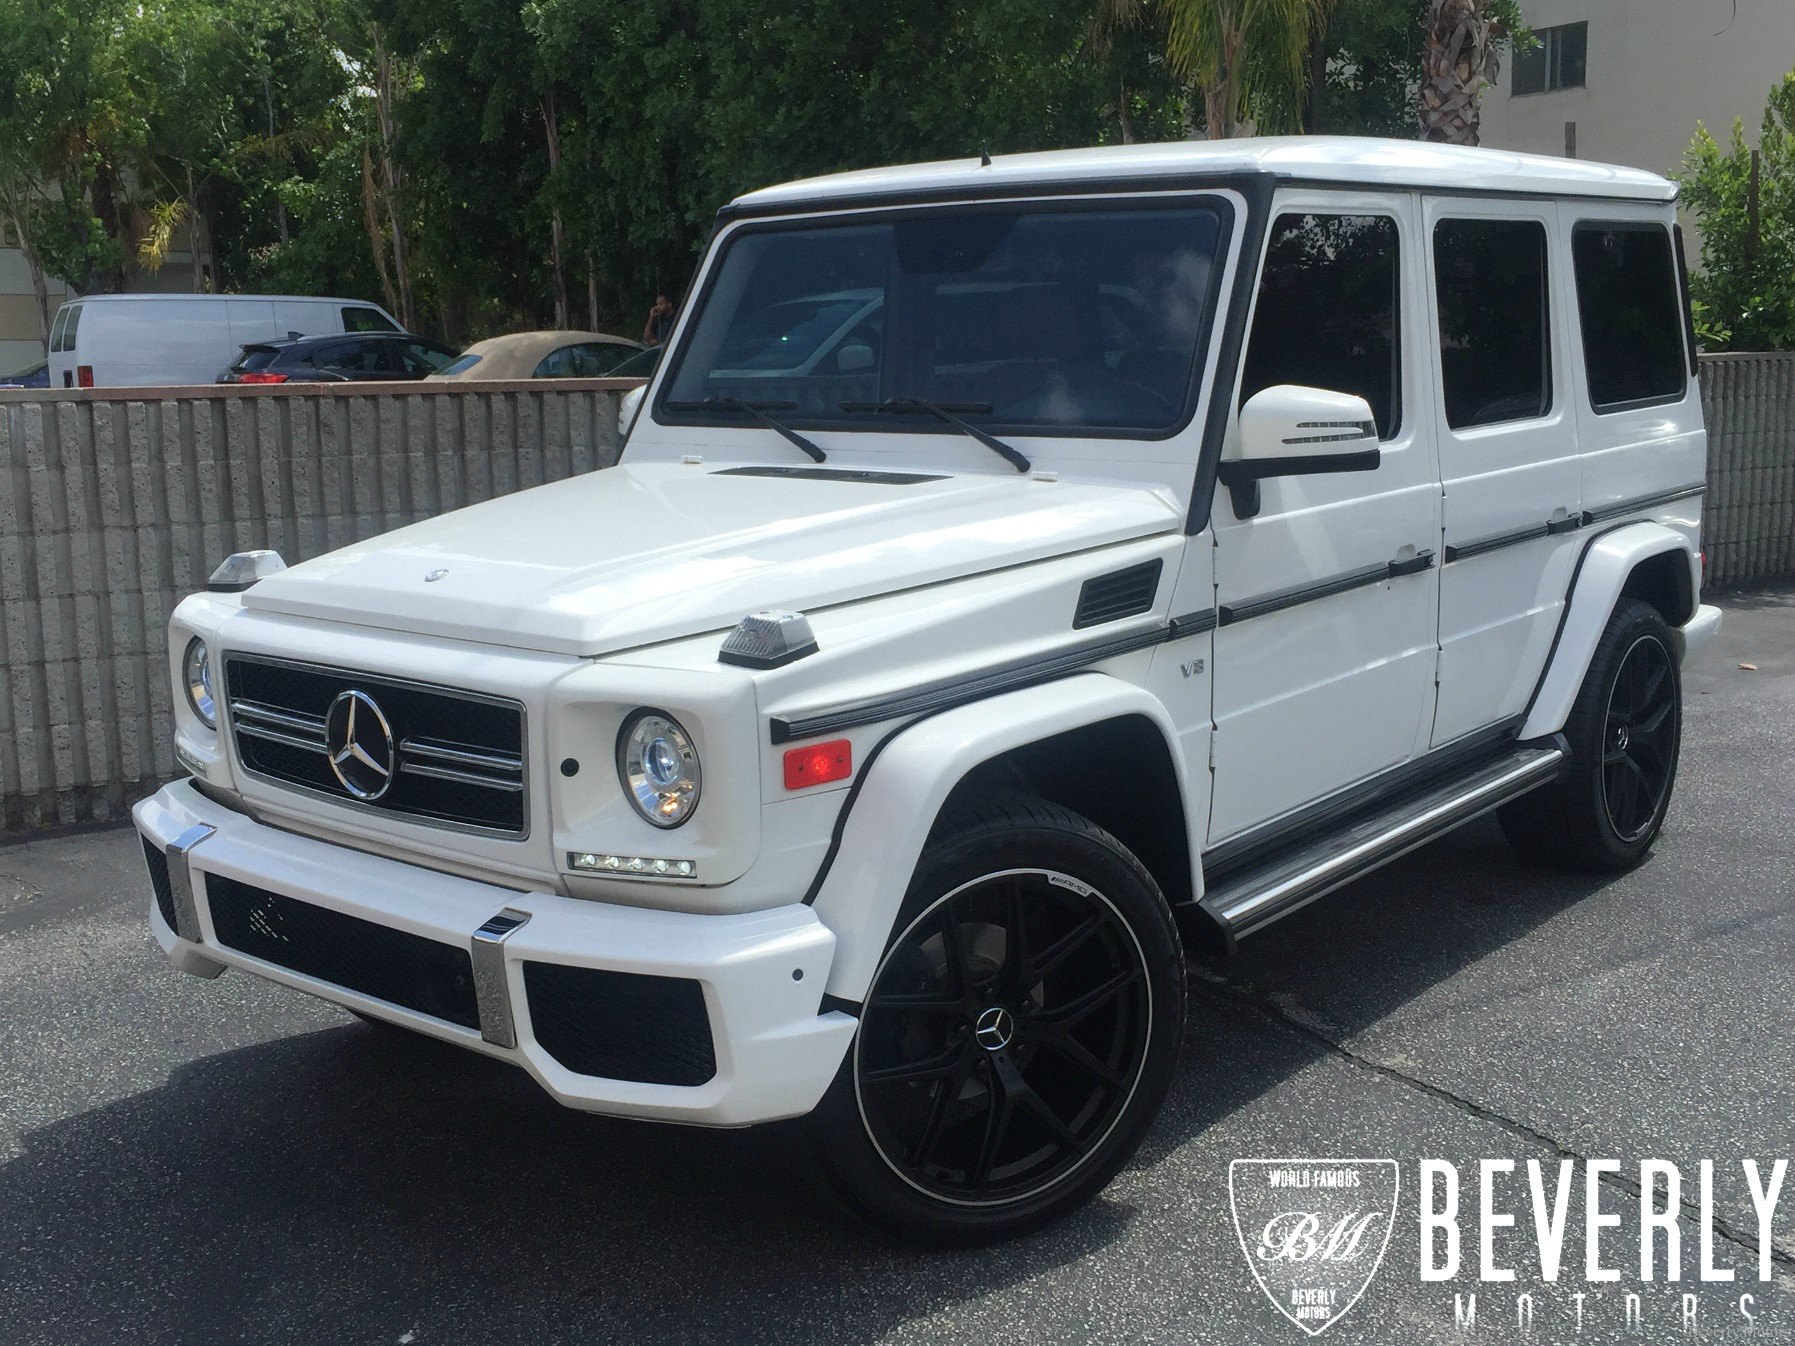 2003 mercedes benz g500 g63 white on gray for sale for Mercedes benz g class used 2003